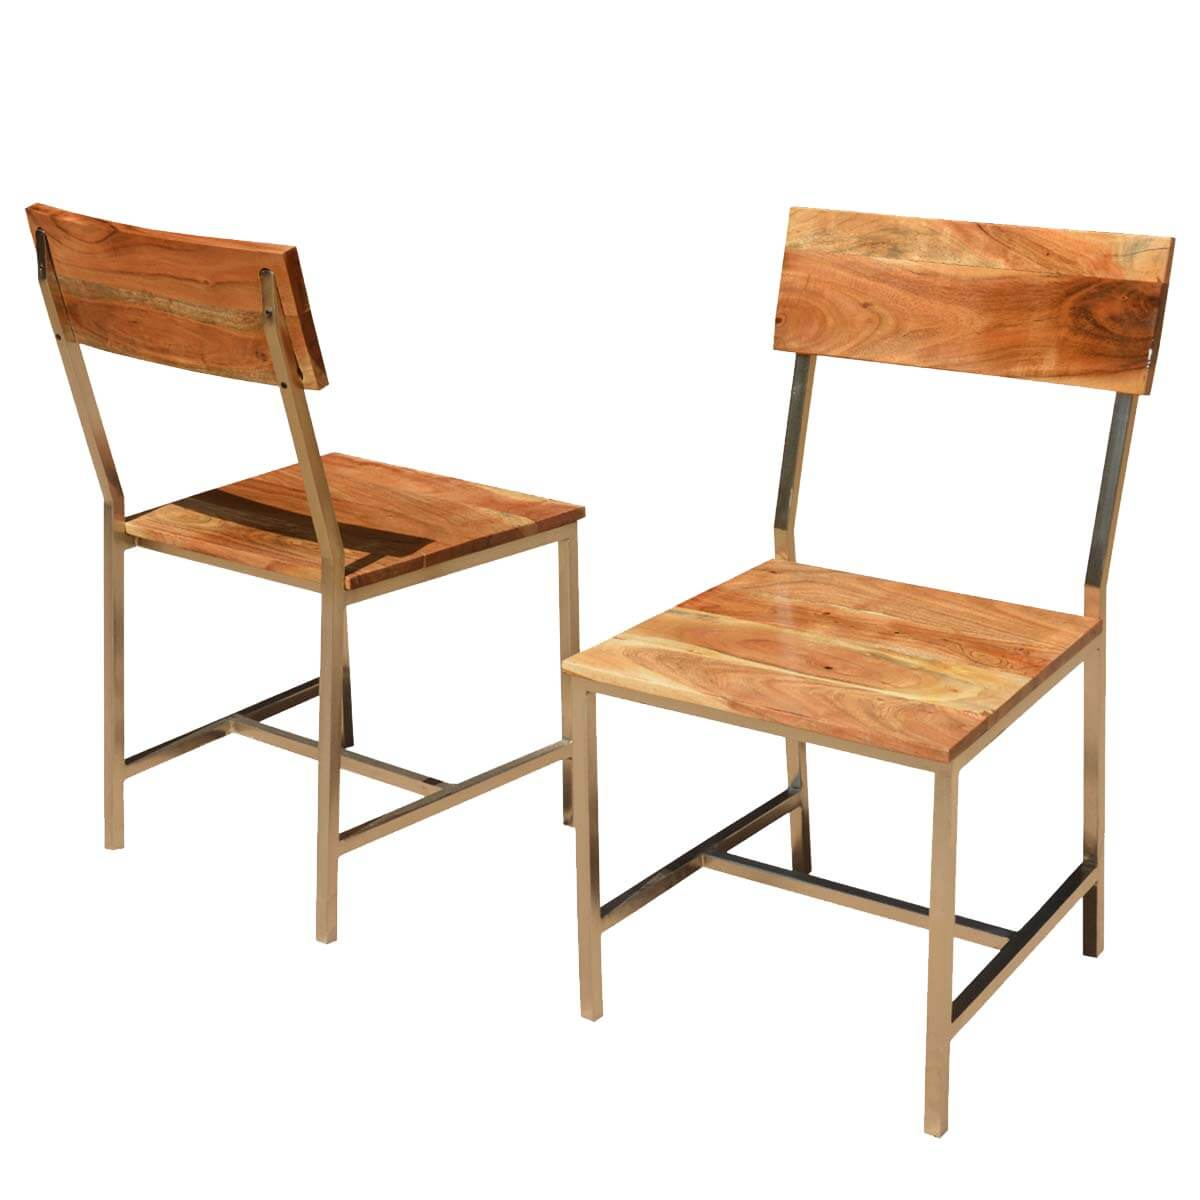 Iron Dining Chairs ~ Solid wood iron rustic dining chair set of